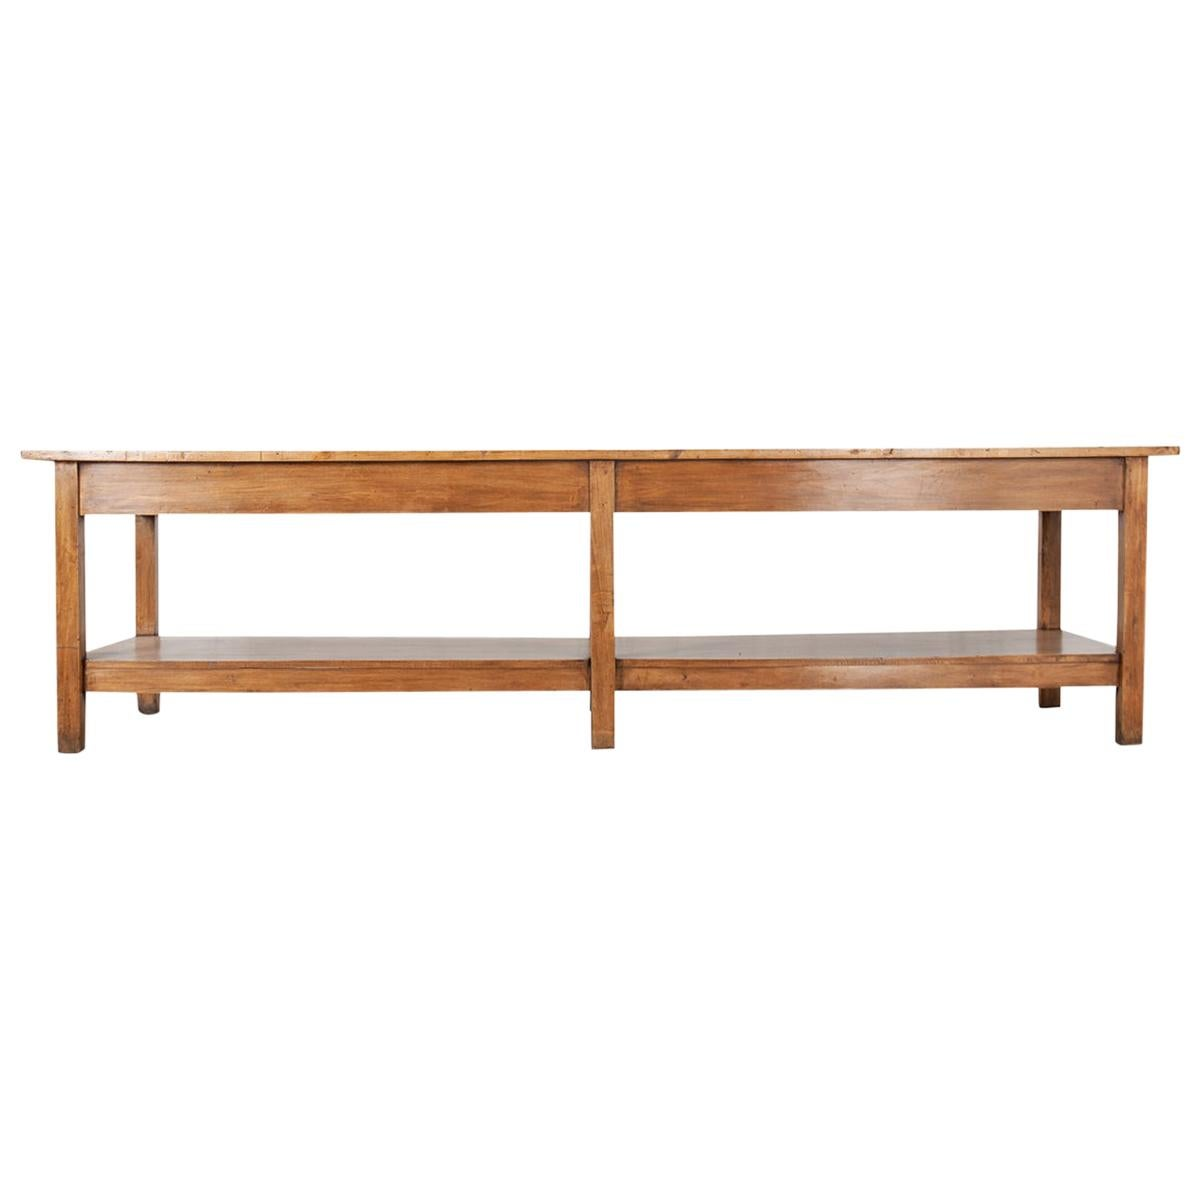 French 19th Century Chestnut Drapery Table